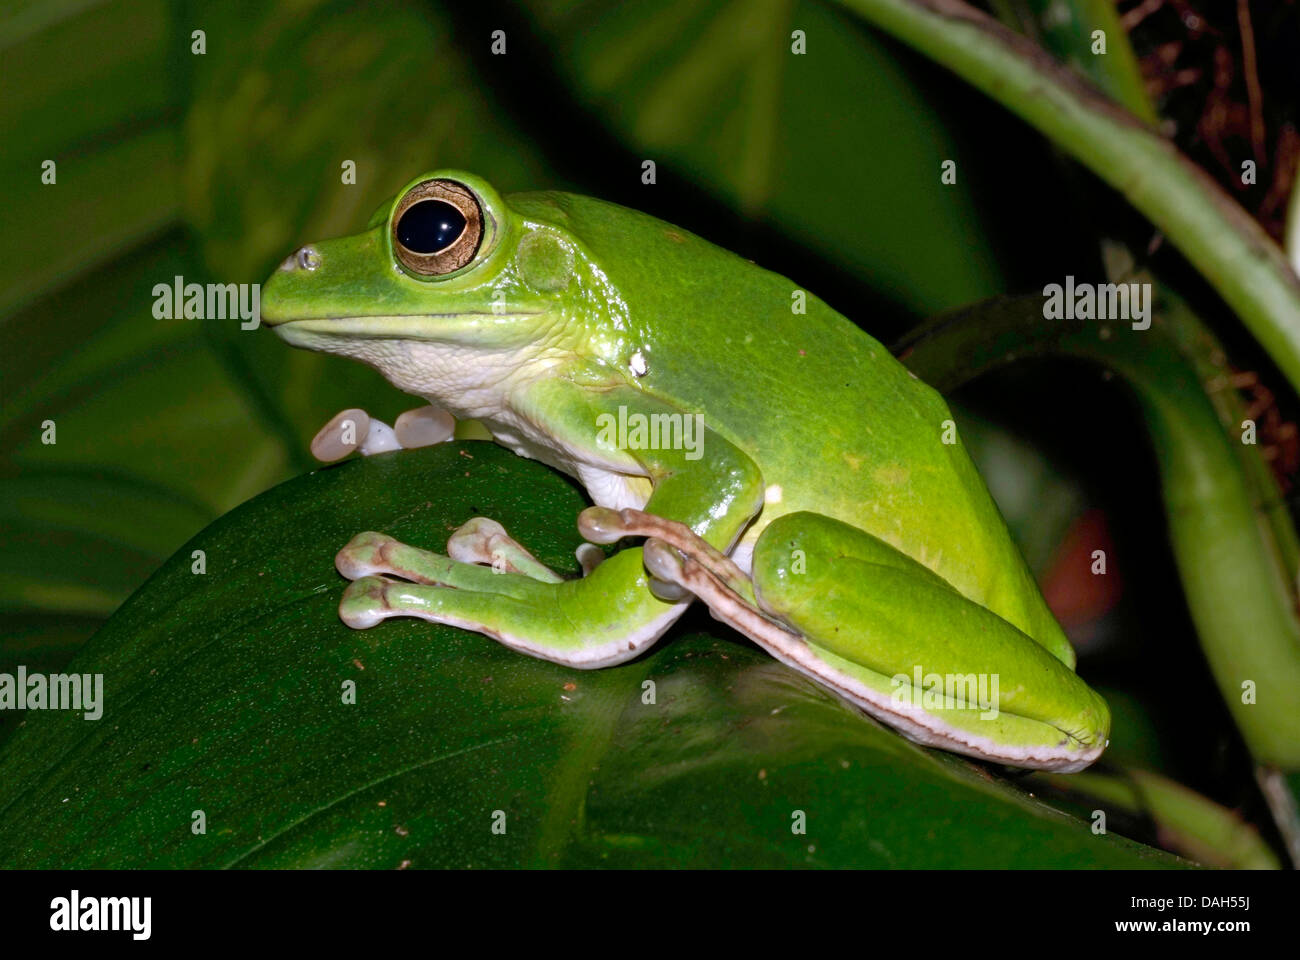 Blanford's whipping frog, Asian gliding tree frog,  Asian gliding treefrog, Chinese flying frog, Chinese gliding Stock Photo